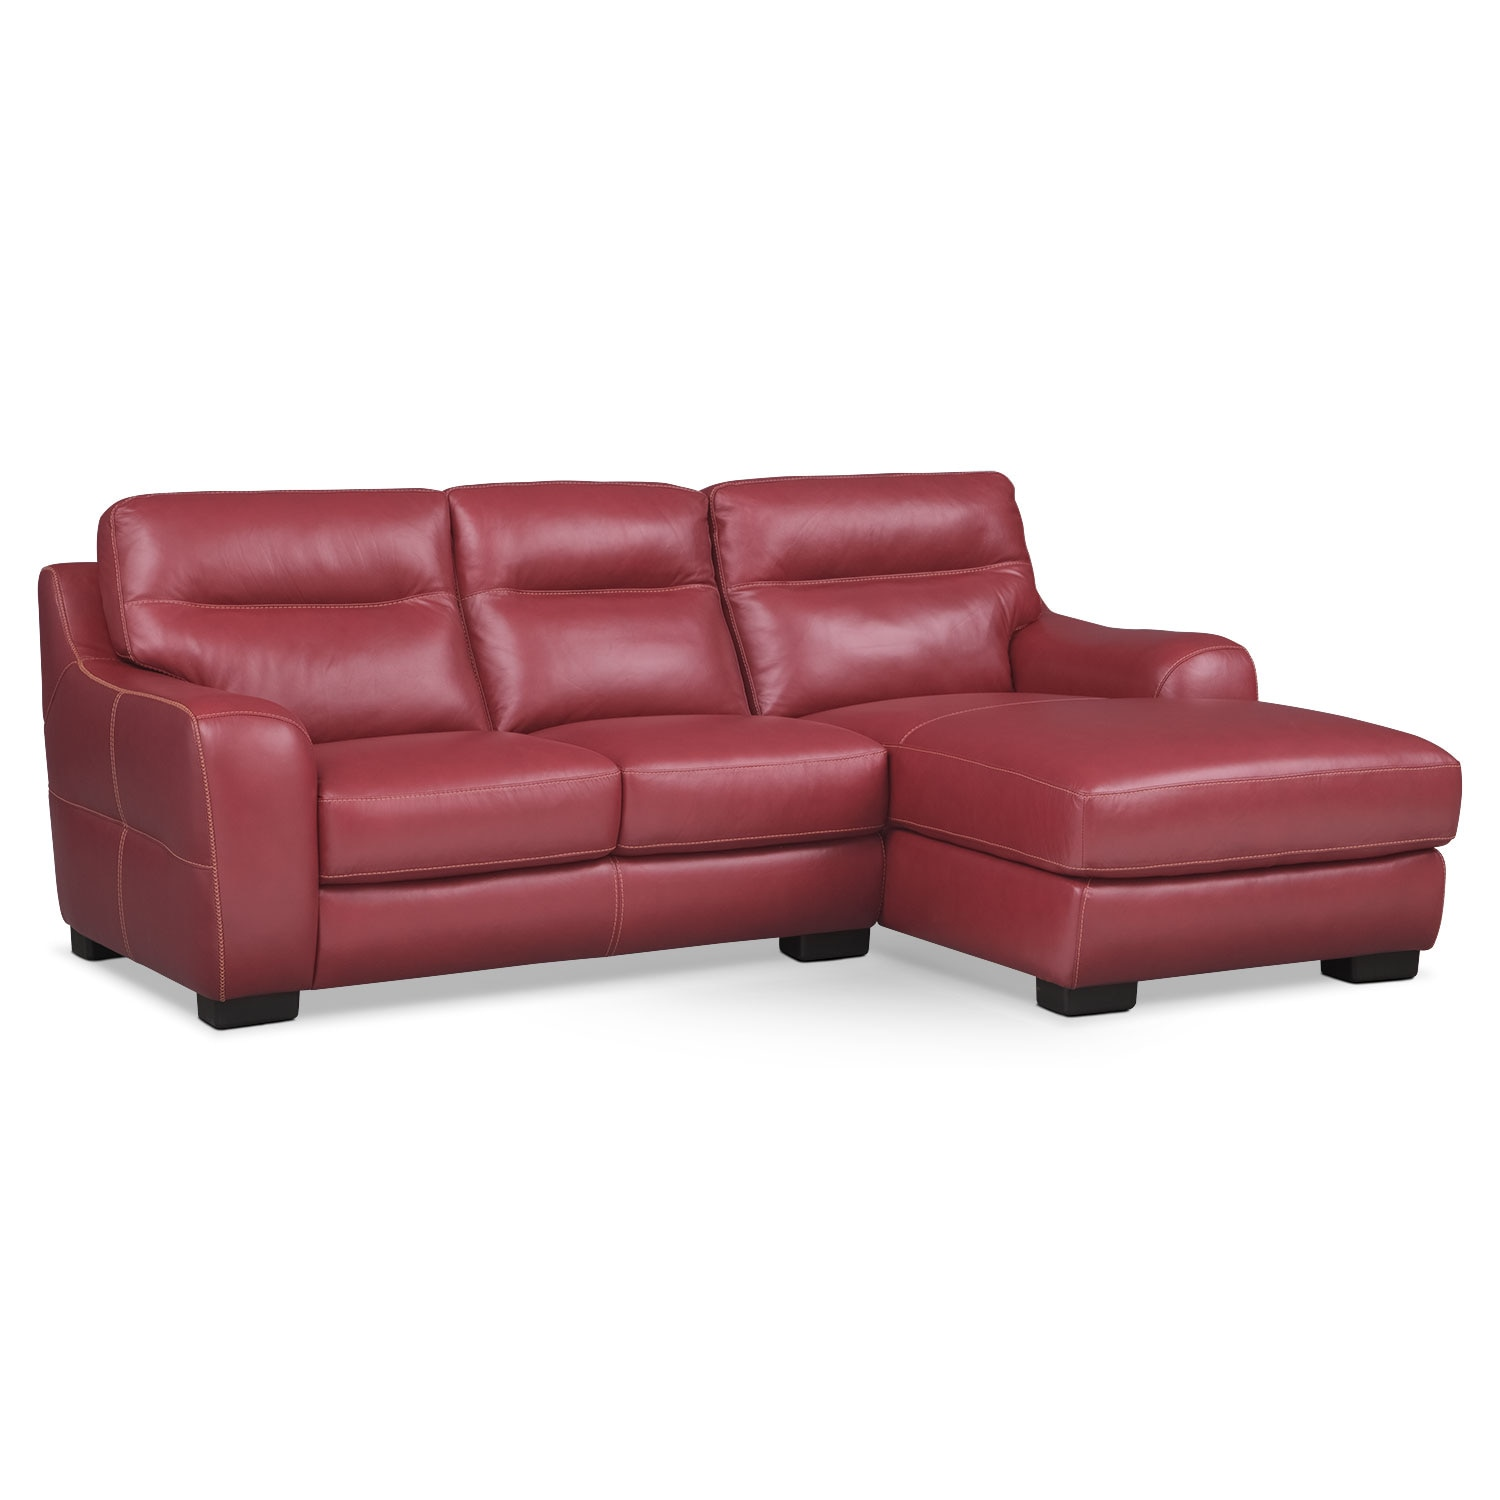 Living Room Furniture - Rocco 2-Piece Right-Facing Sectional - Red